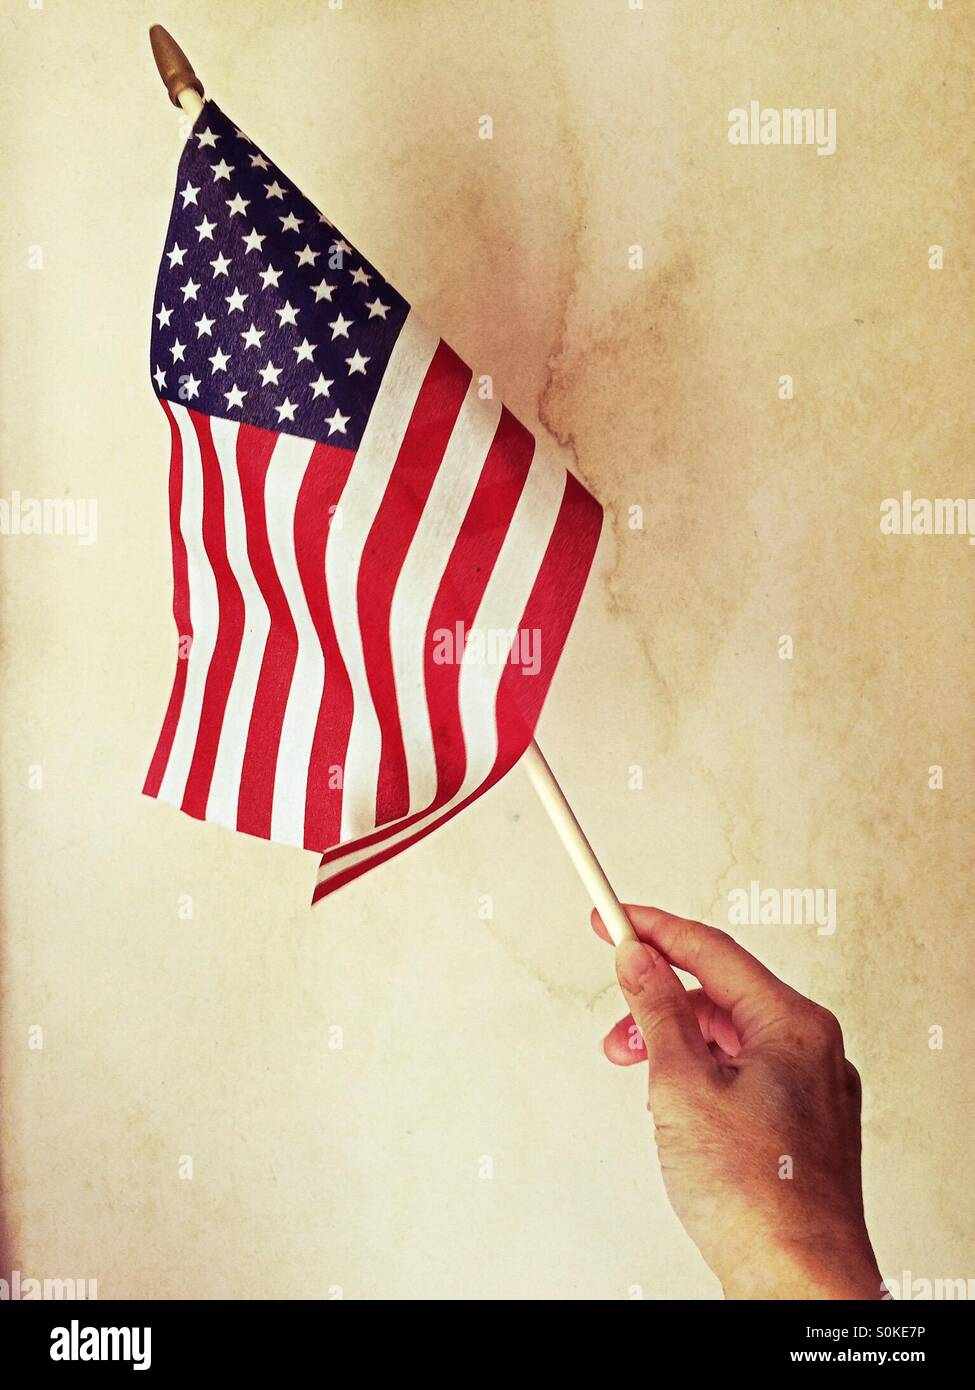 Hand Holding American Flag Photo Stock